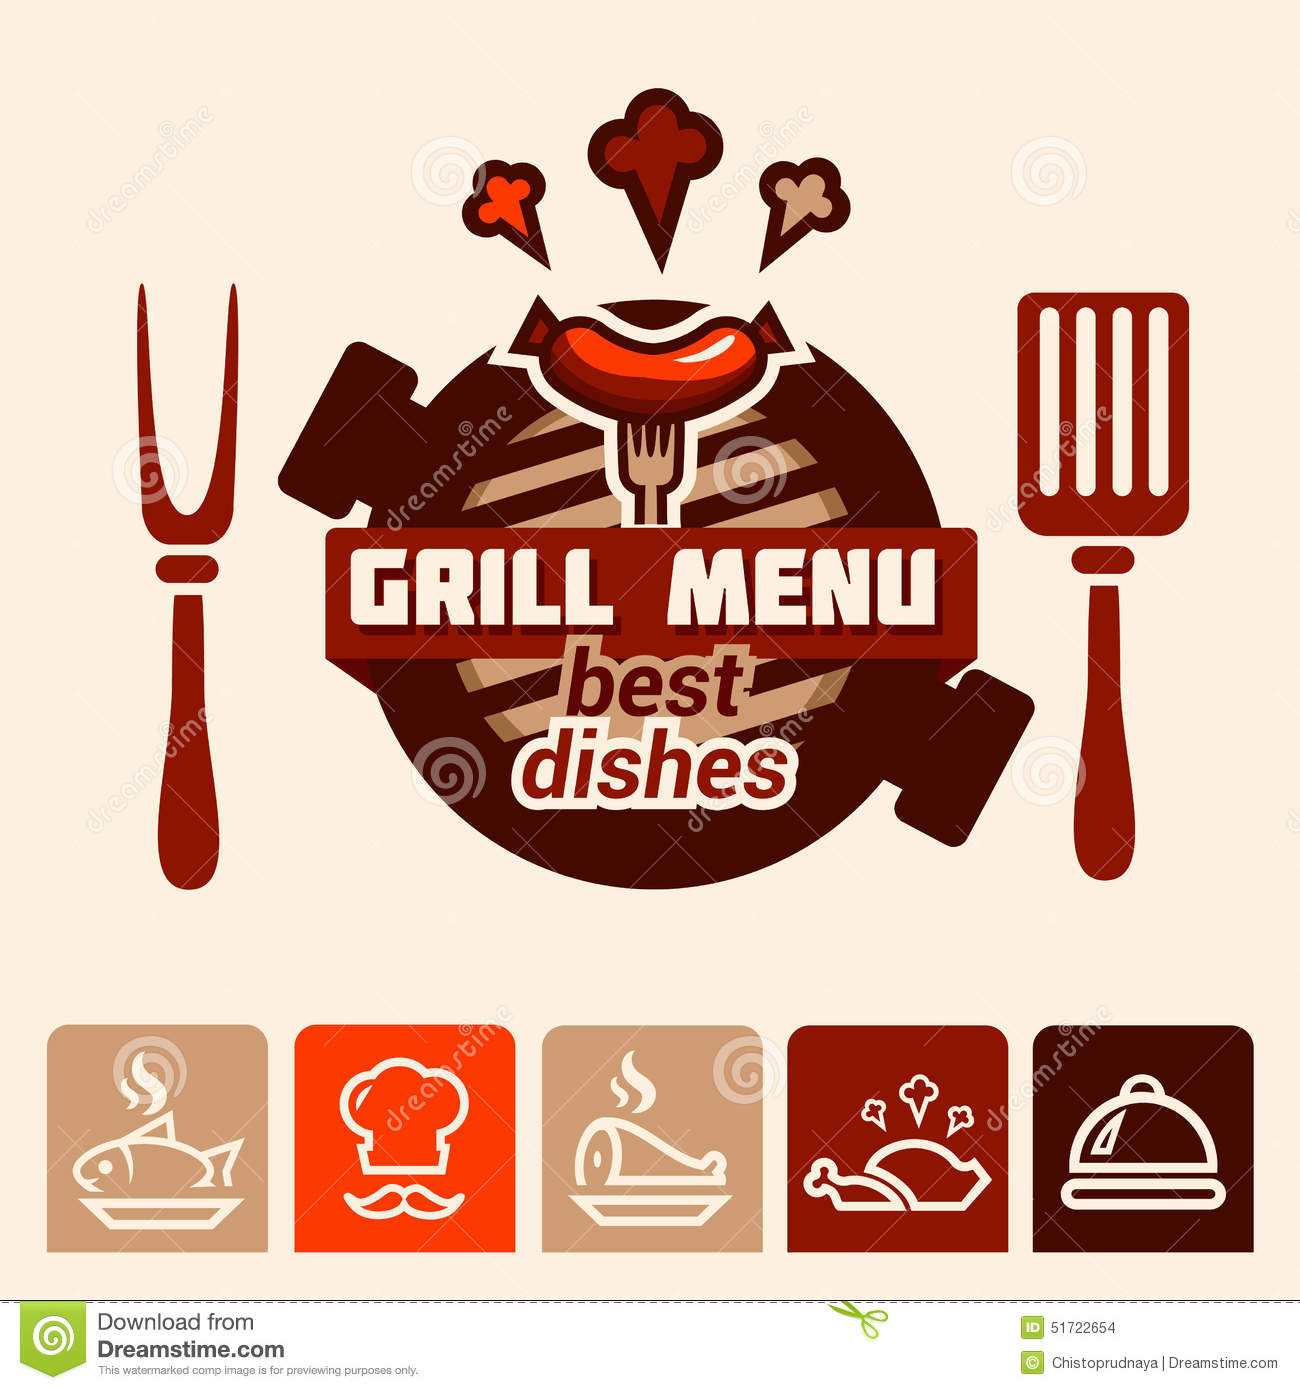 ... badge, label, logo, icons design templates for meat store, grill menu